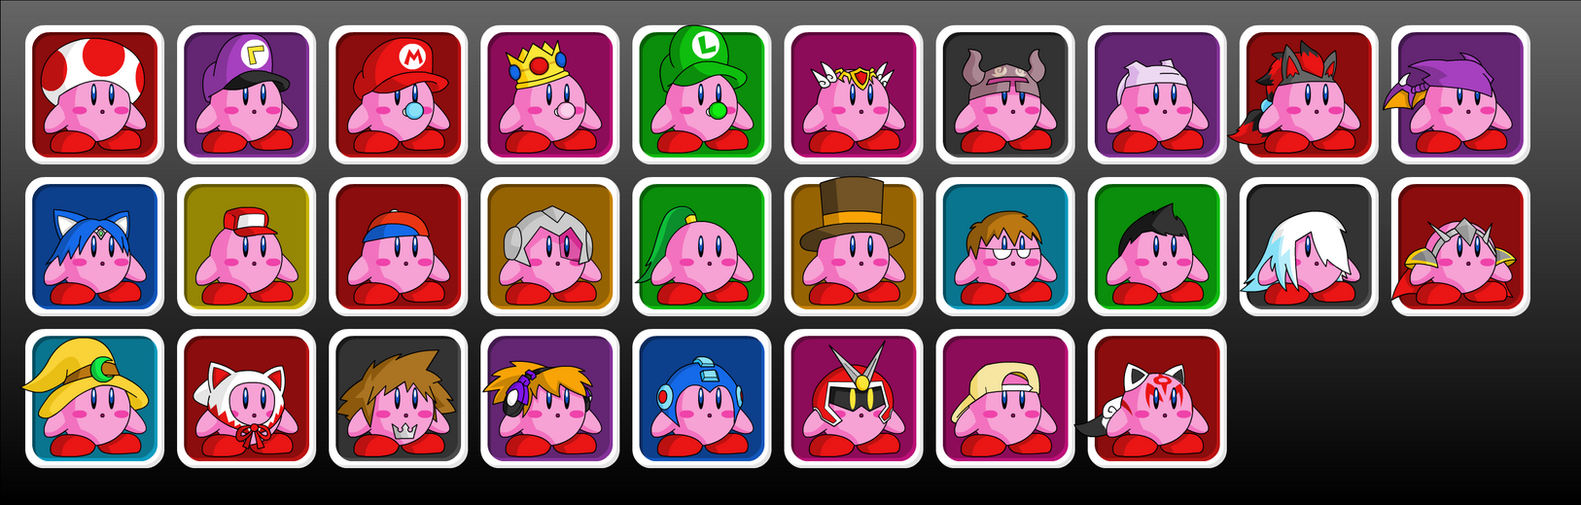 General Character Discussion - Page 4 Smash_Bros_Wishlist_of_Kirbies_by_UMSAuthorLava